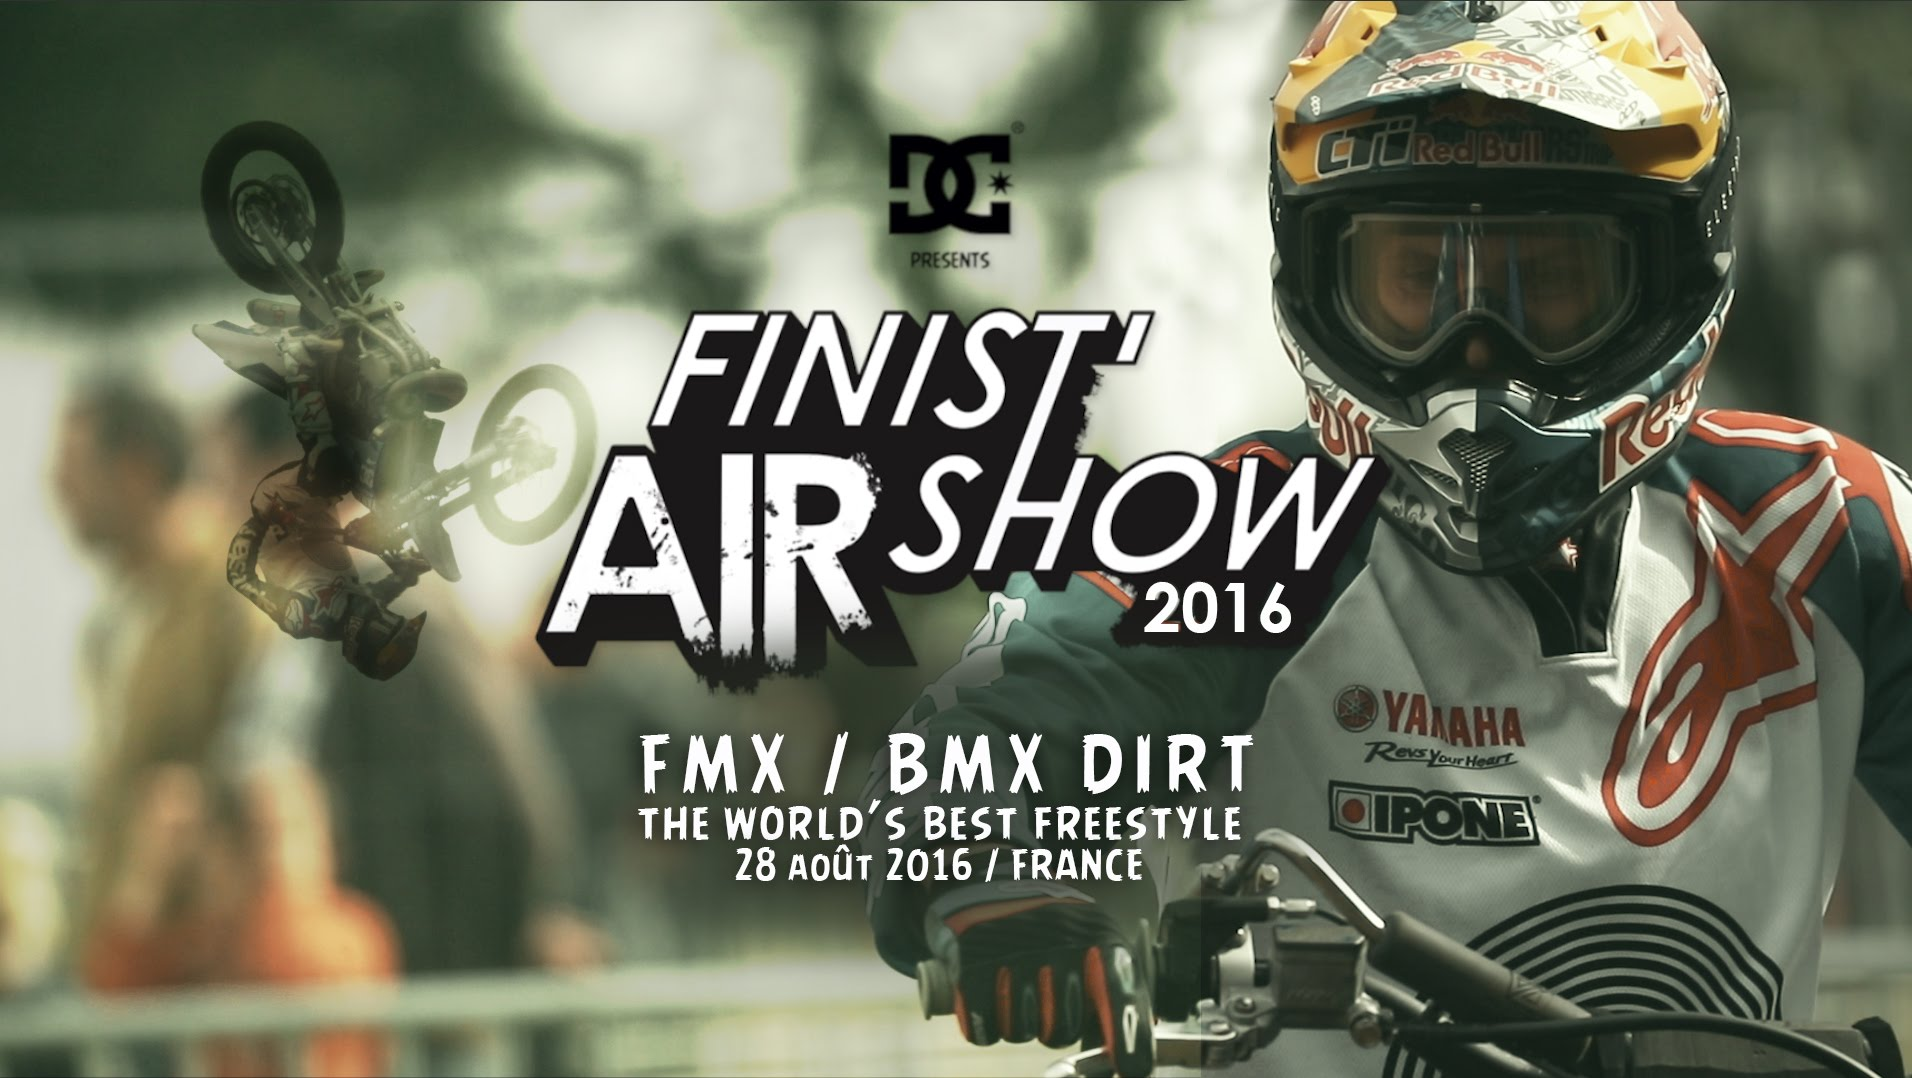 Official Edit | Watch Tom Pages, Taka Higashino and Clinton Moore Get Loose at the 2016 Finist'air Show